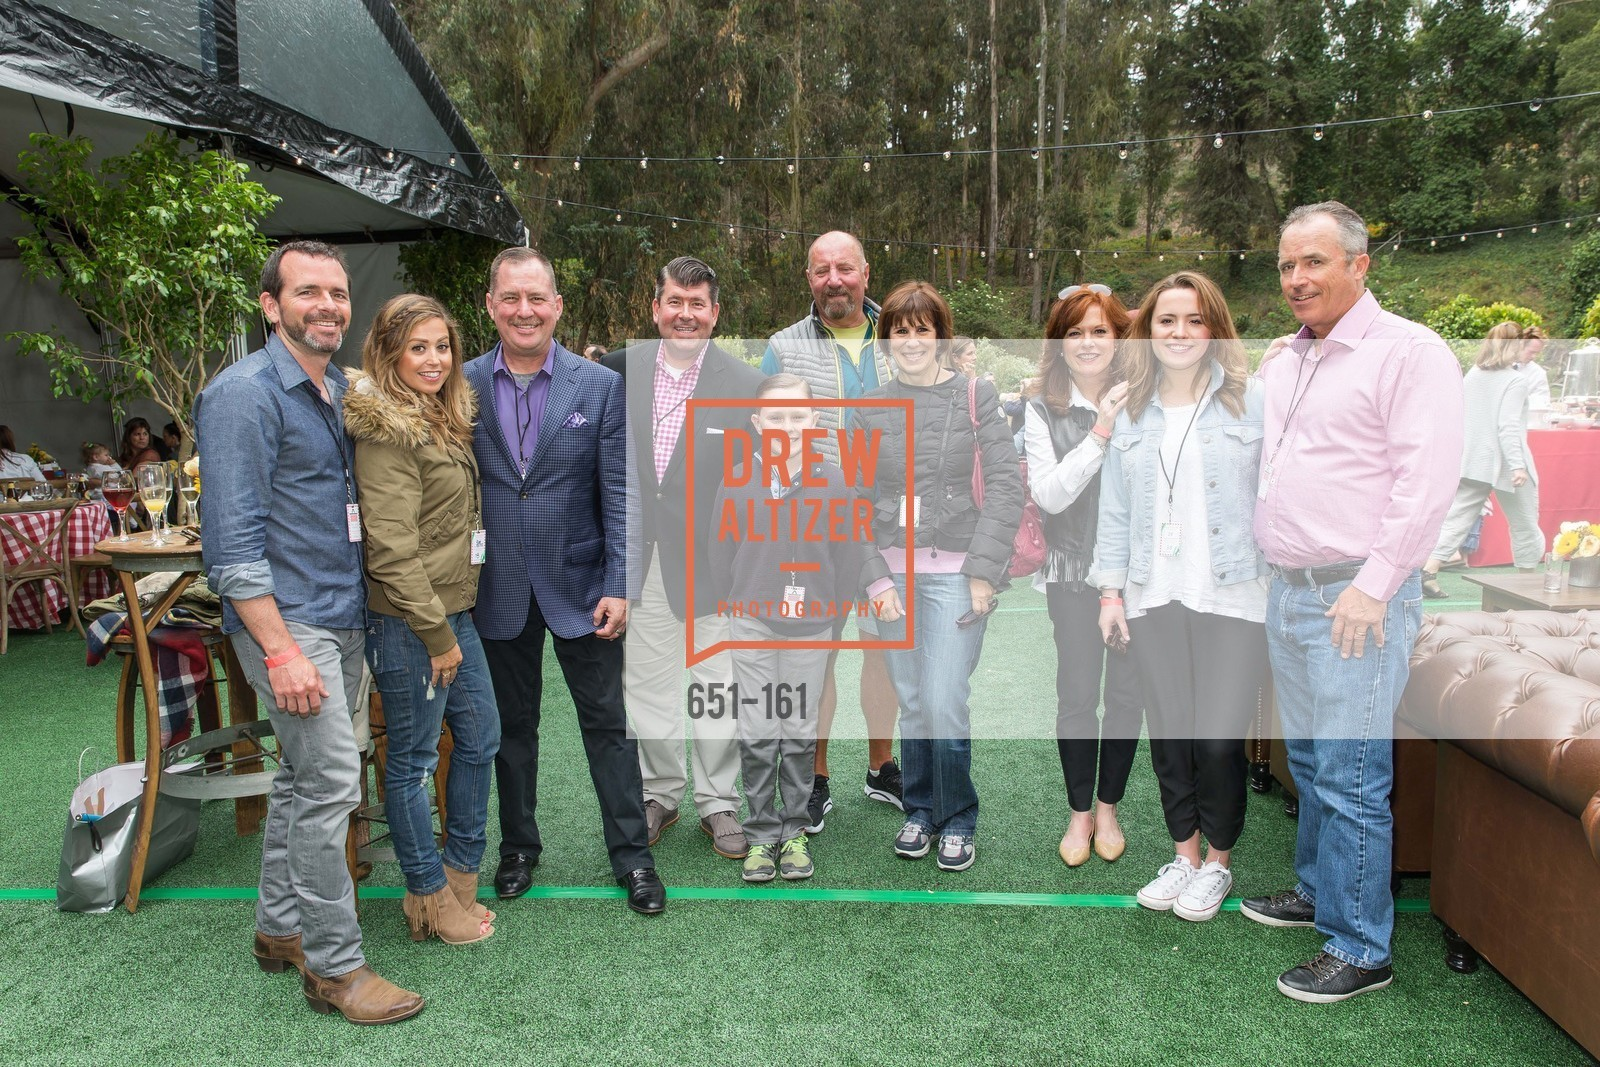 Beau Roy, Shannon Blunden, Mike Genoshe, Alan Morrell, Tim Morrell, John Mino, Terri Mino, Theresa Spirz, Kelsey Spirz, Carl Spirz, THE BIG PICNIC Kicking off  2015 Stern Grove Season, Stern Grove. 2750 19th Avenue, June 14th, 2015,Drew Altizer, Drew Altizer Photography, full-service event agency, private events, San Francisco photographer, photographer California